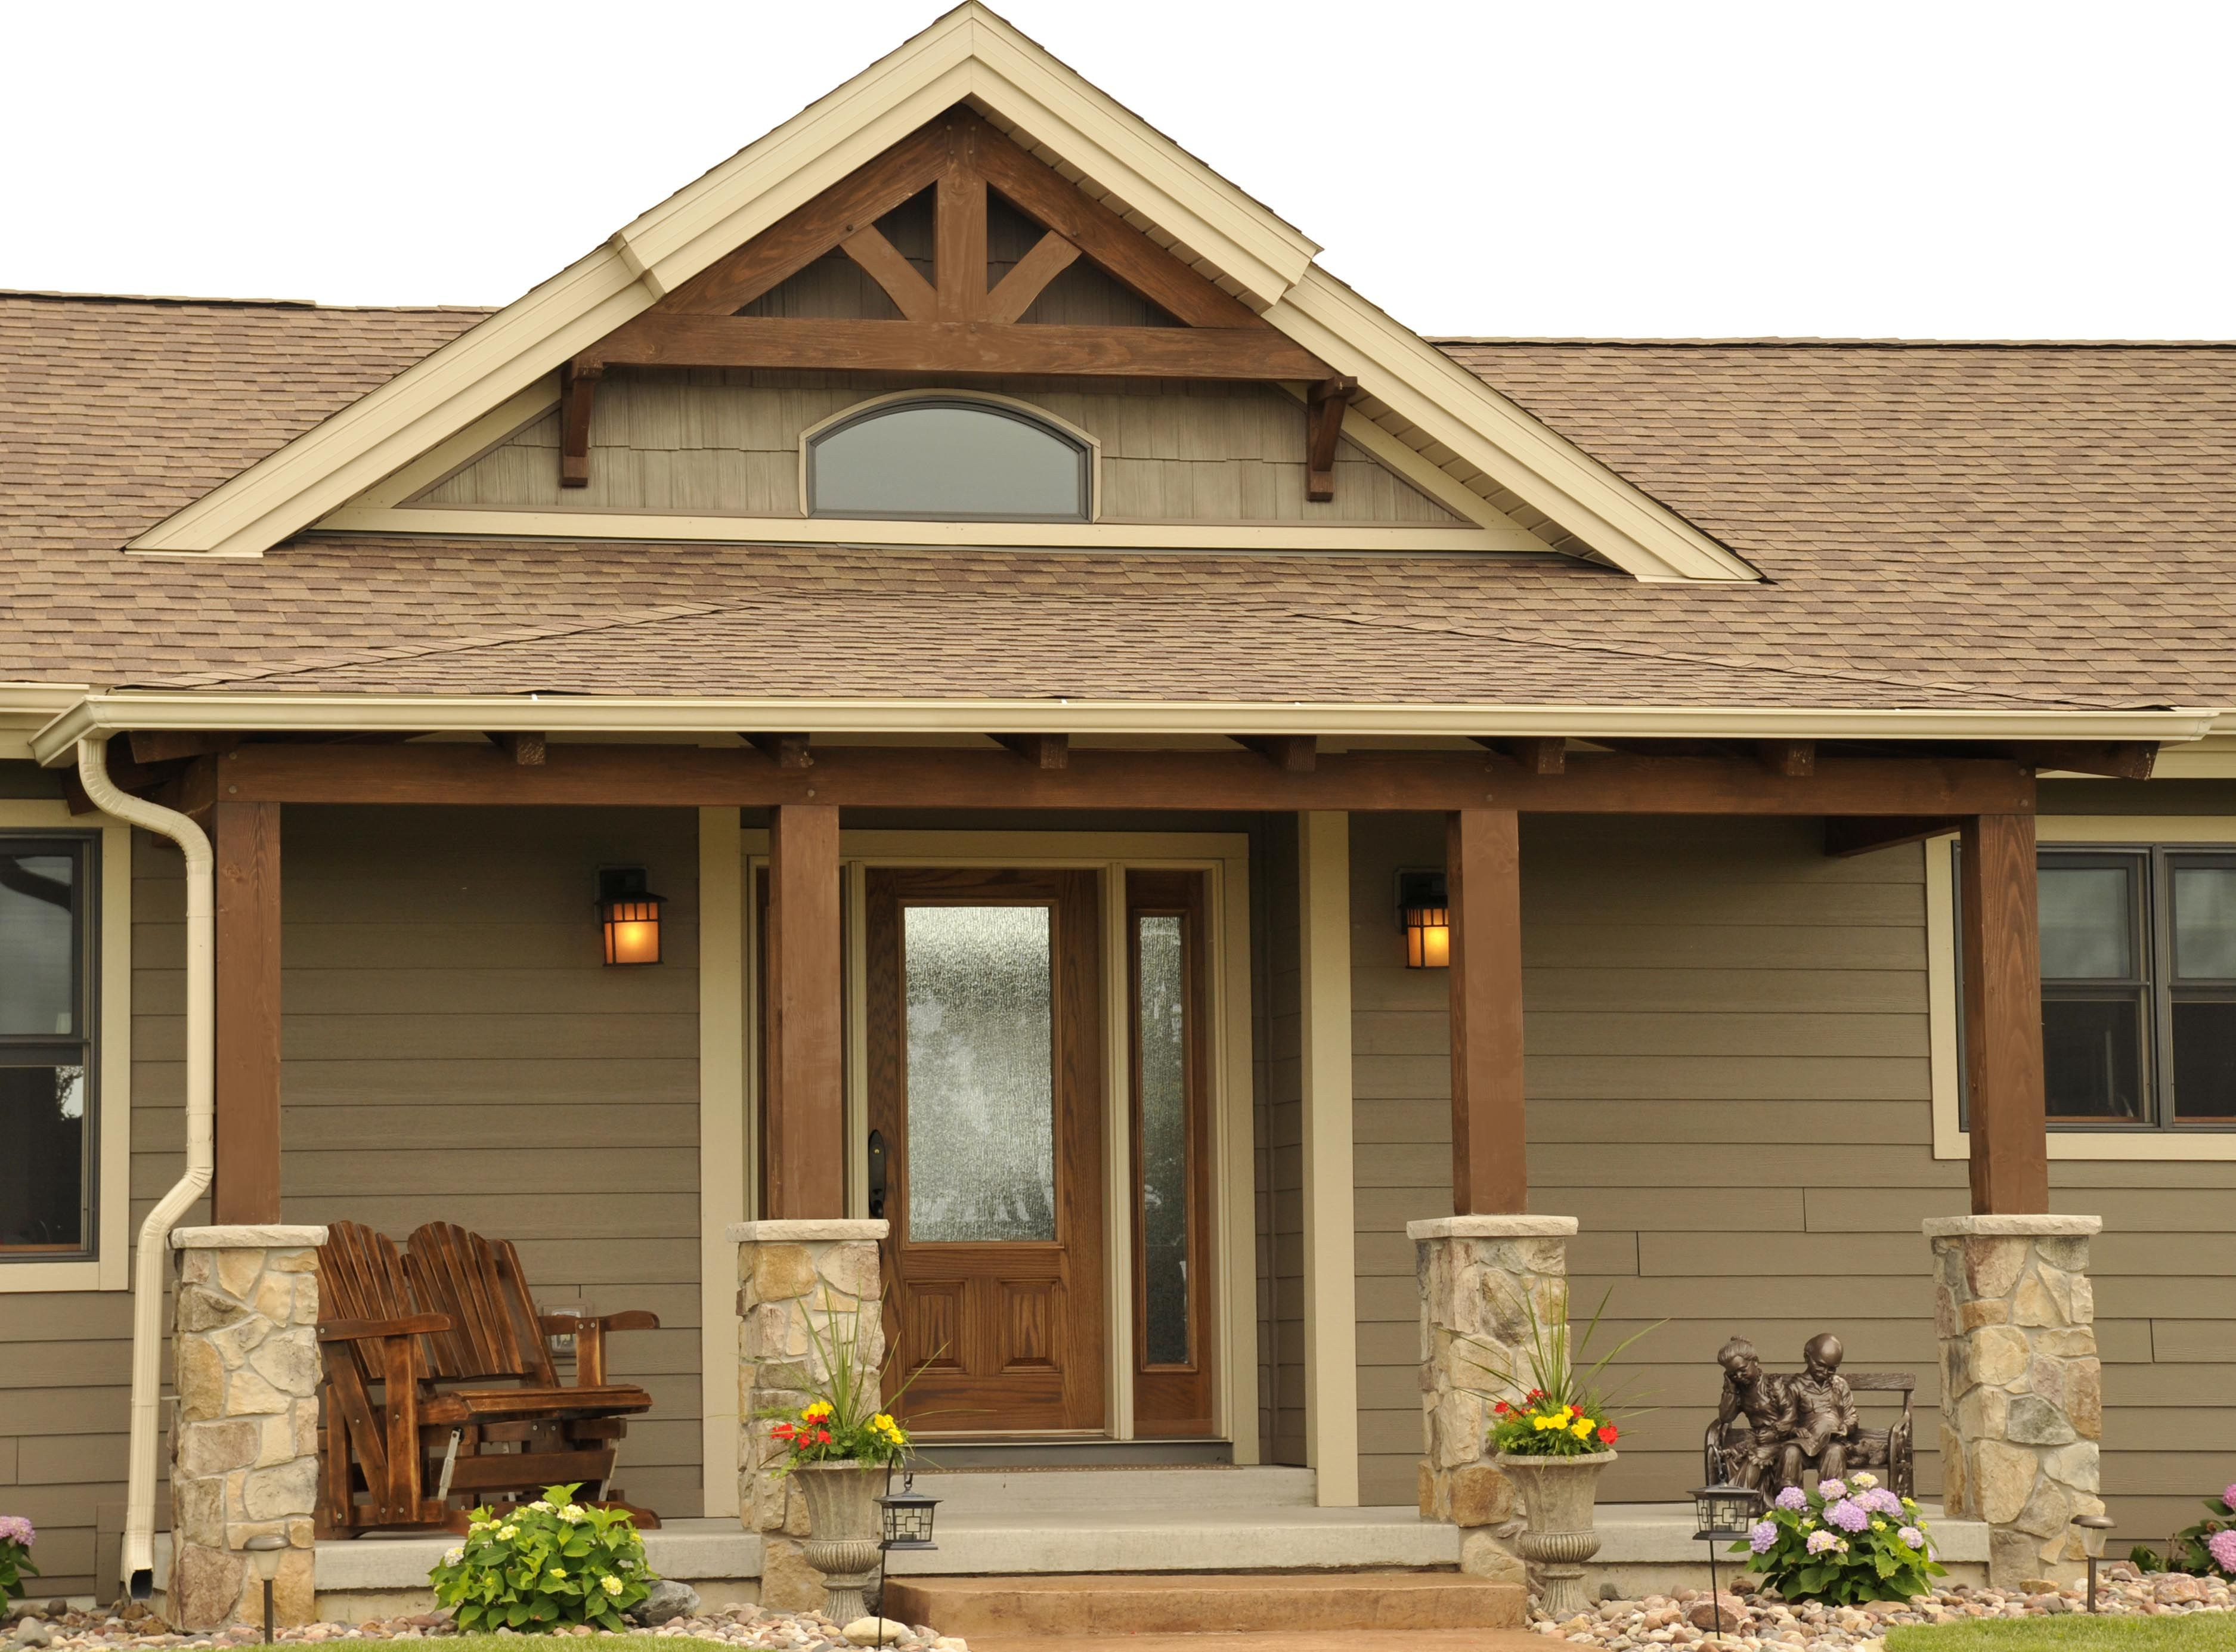 Exterior house color ideas craftsman - Find This Pin And More On Front Of House Ideas